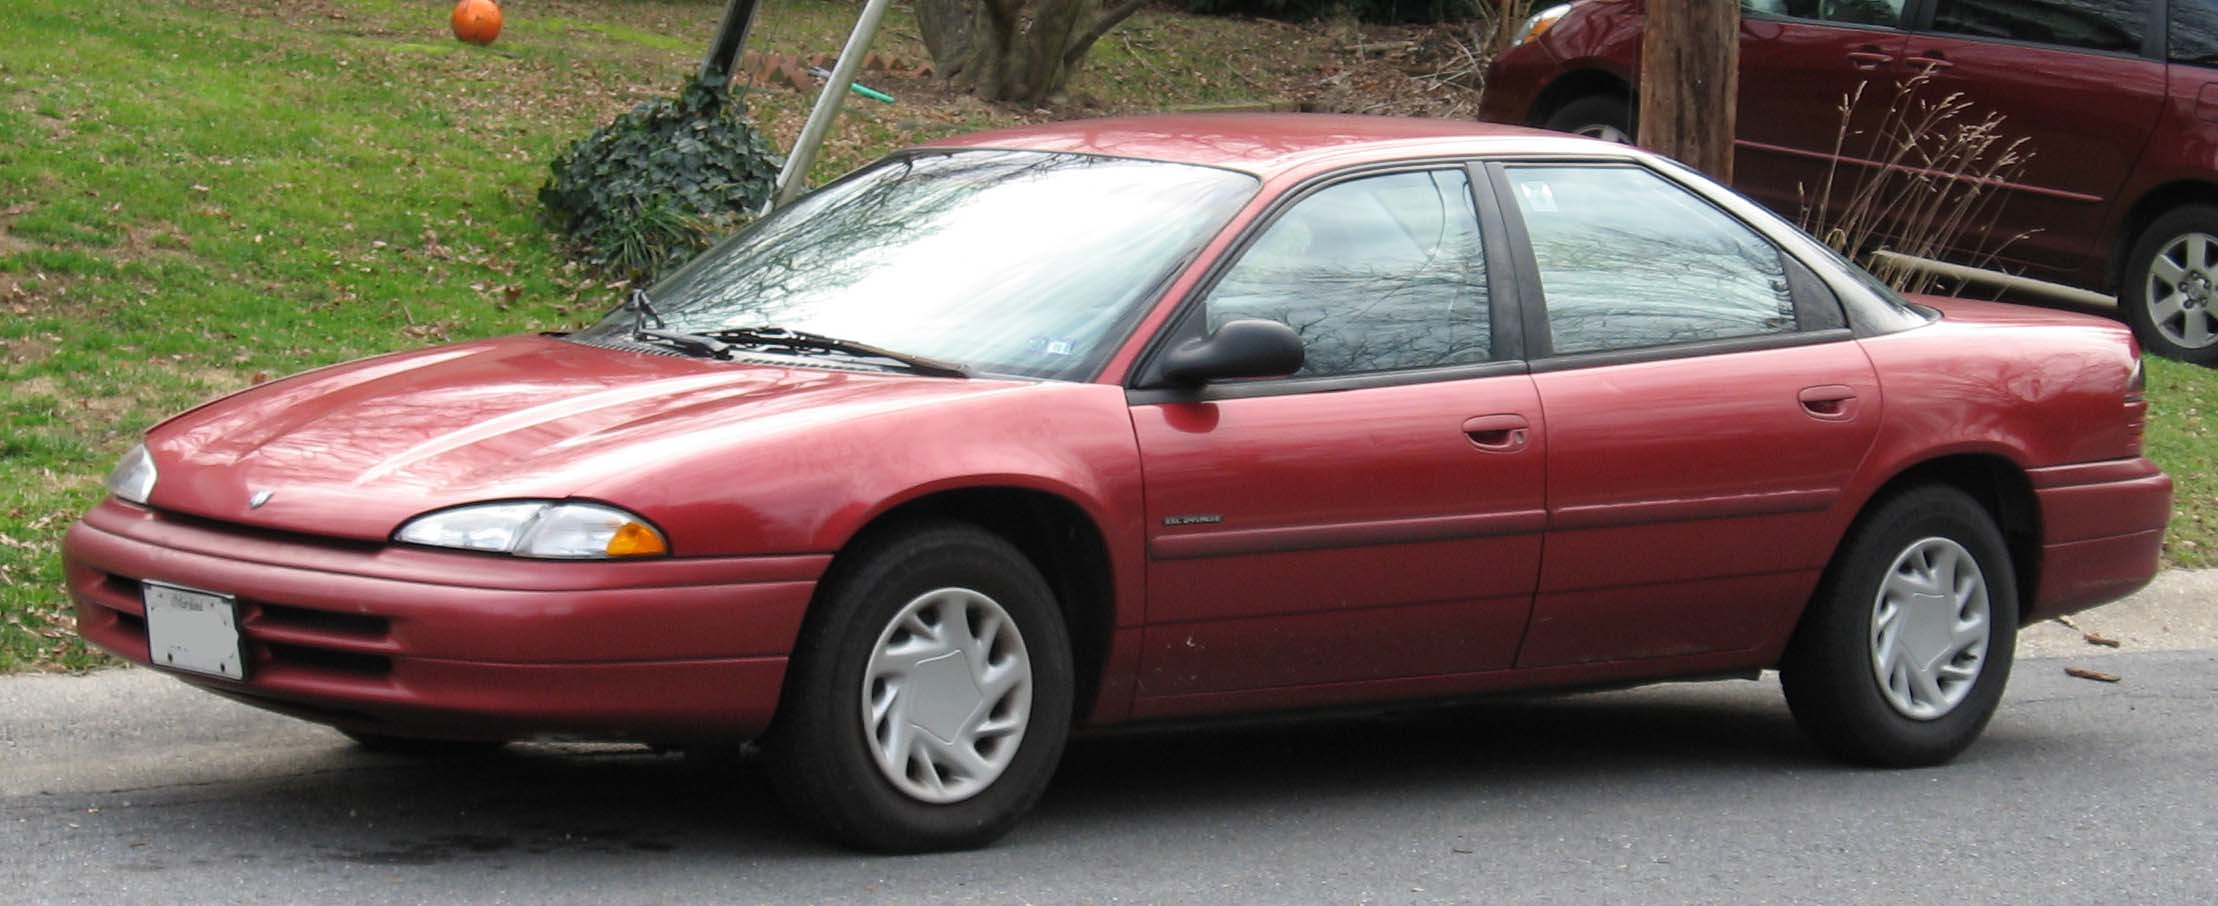 1995 Dodge Intrepid #5